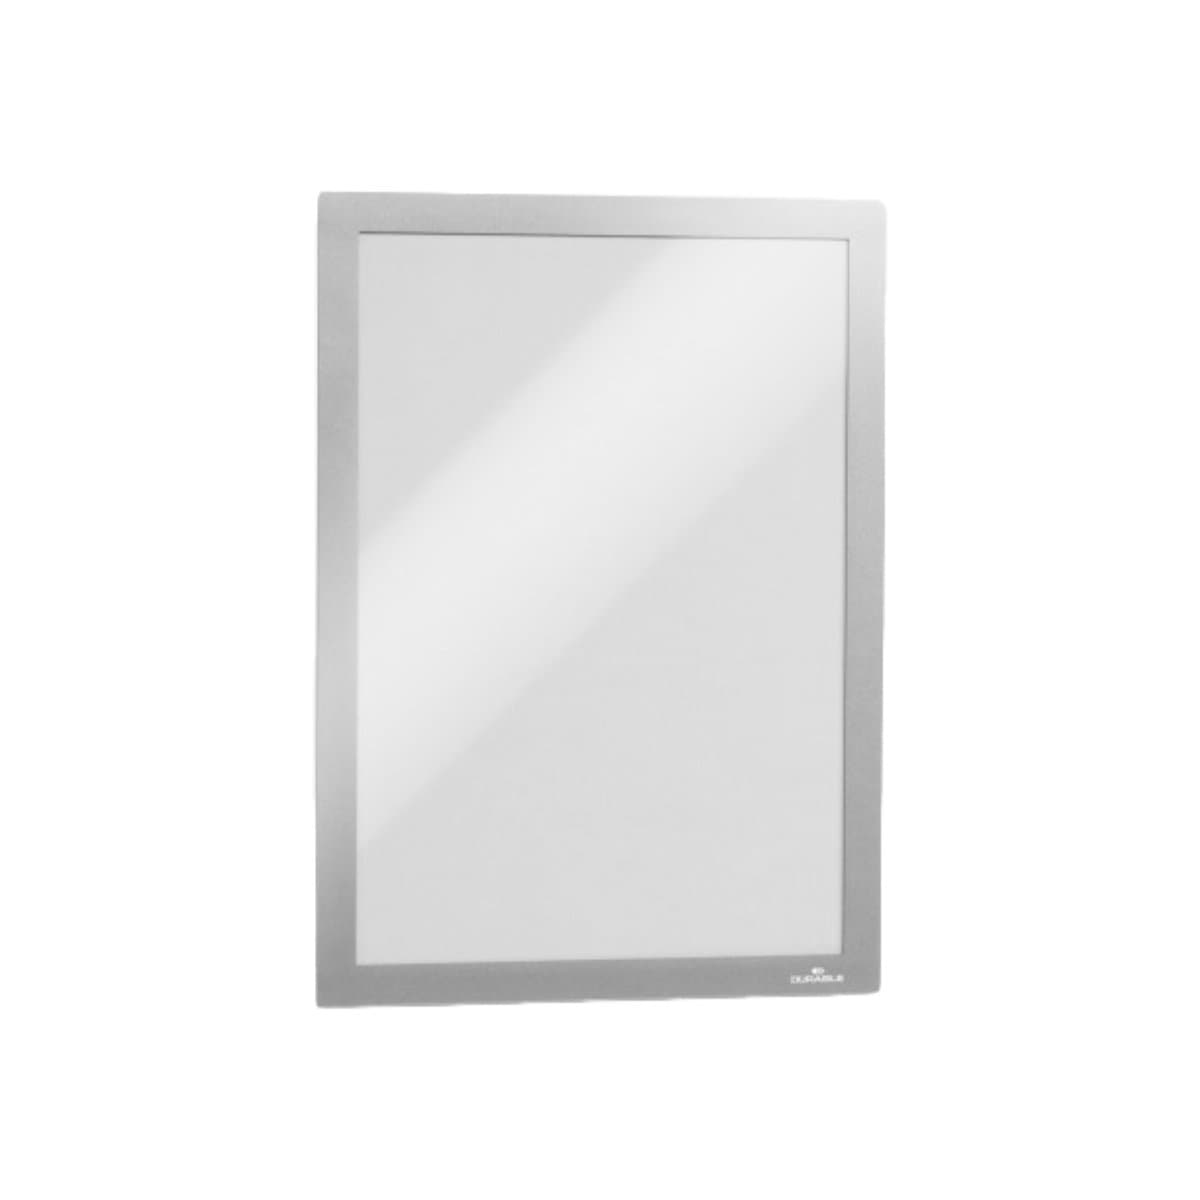 Durable DURAFRAME, Self-Adhesive Magnetic Frame A4, 2/pack, Metallic Silver